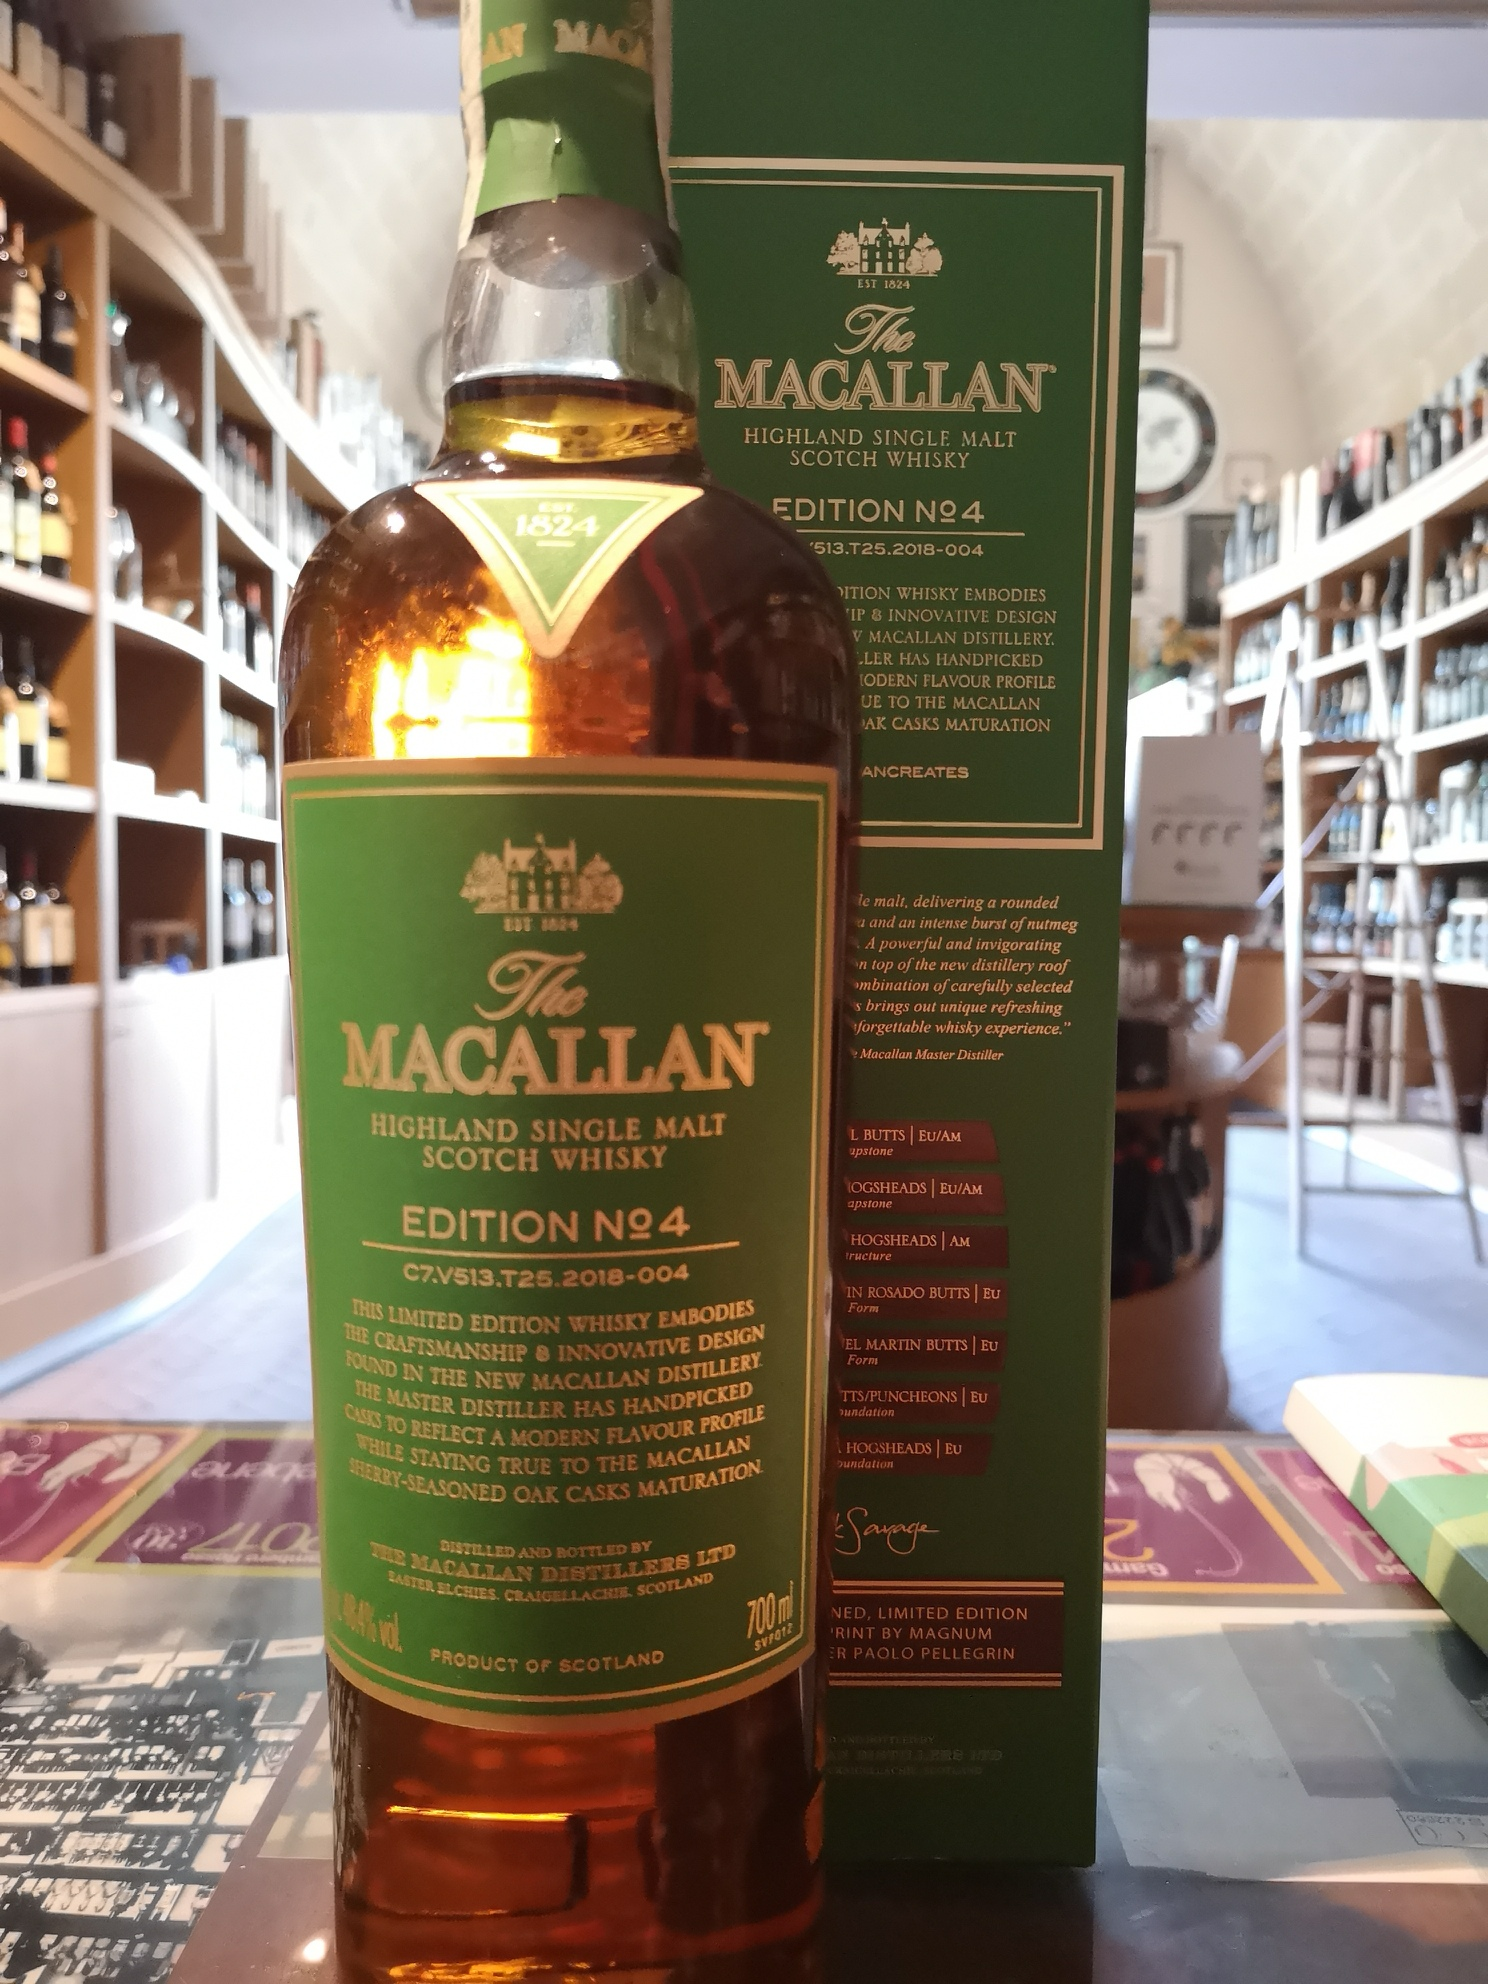 The Macallan Edition N° 4 Limited Edition 2018